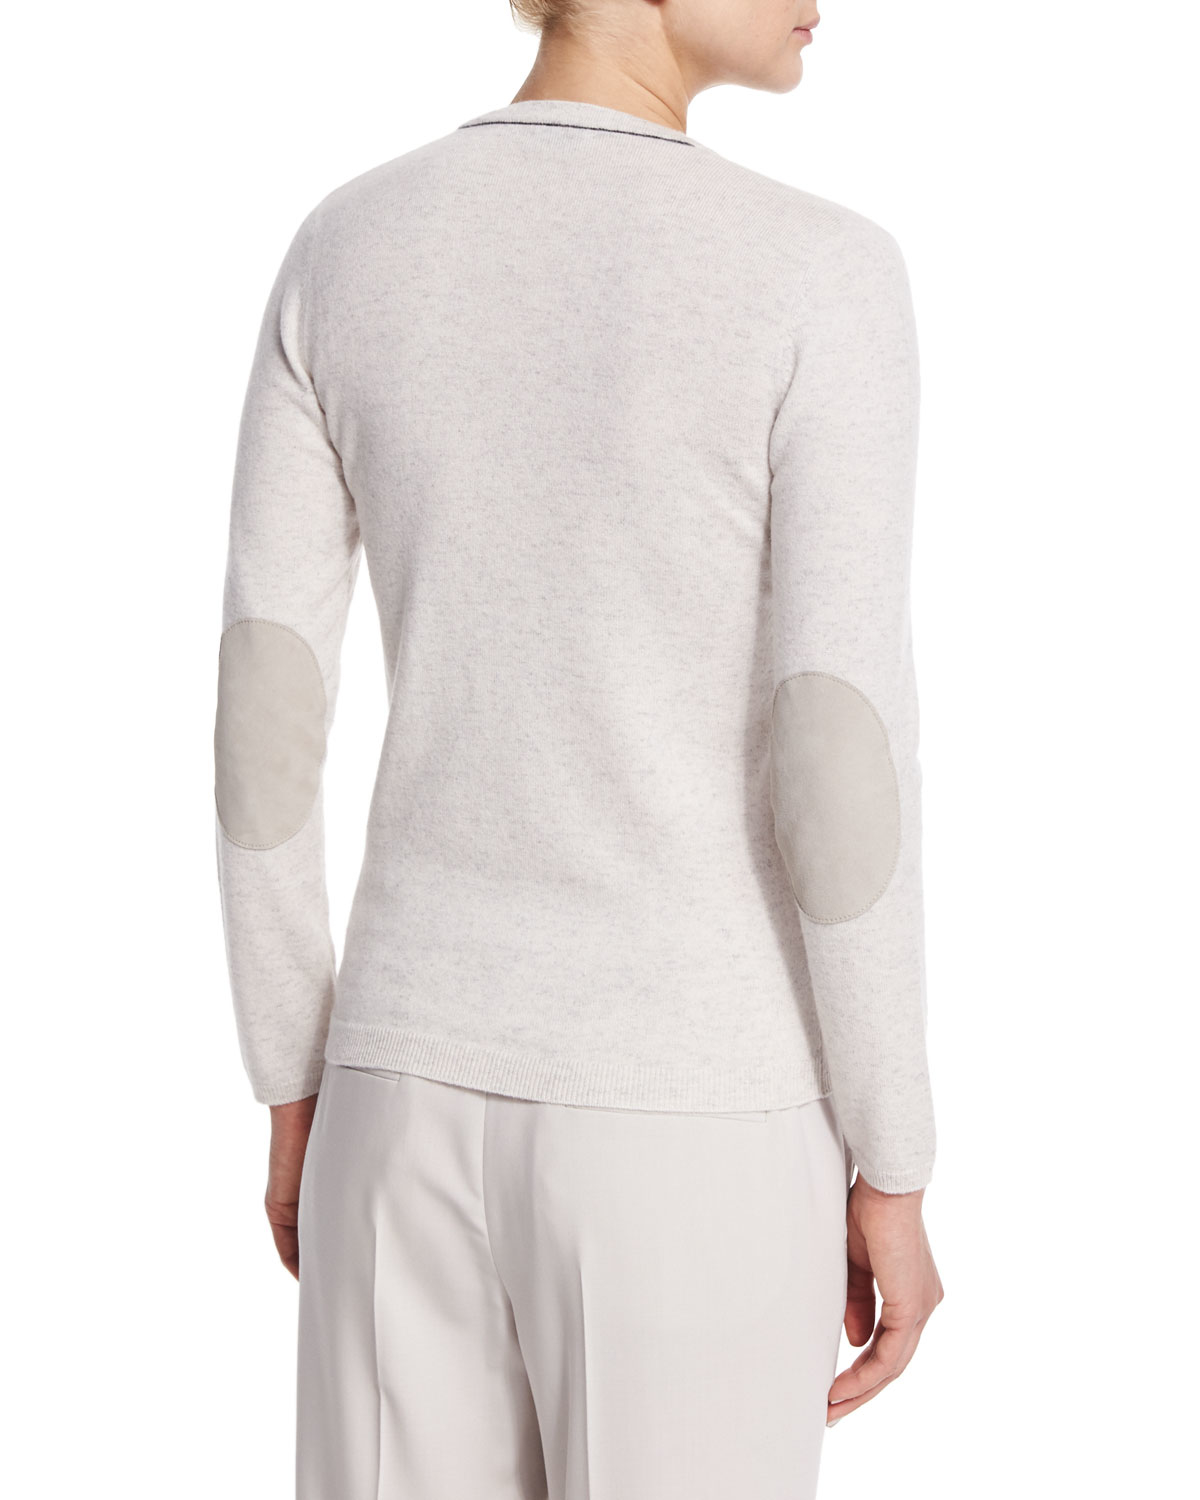 d496ccea49 Lyst - Brunello Cucinelli Suede Elbow-patch Cashmere Sweater in White